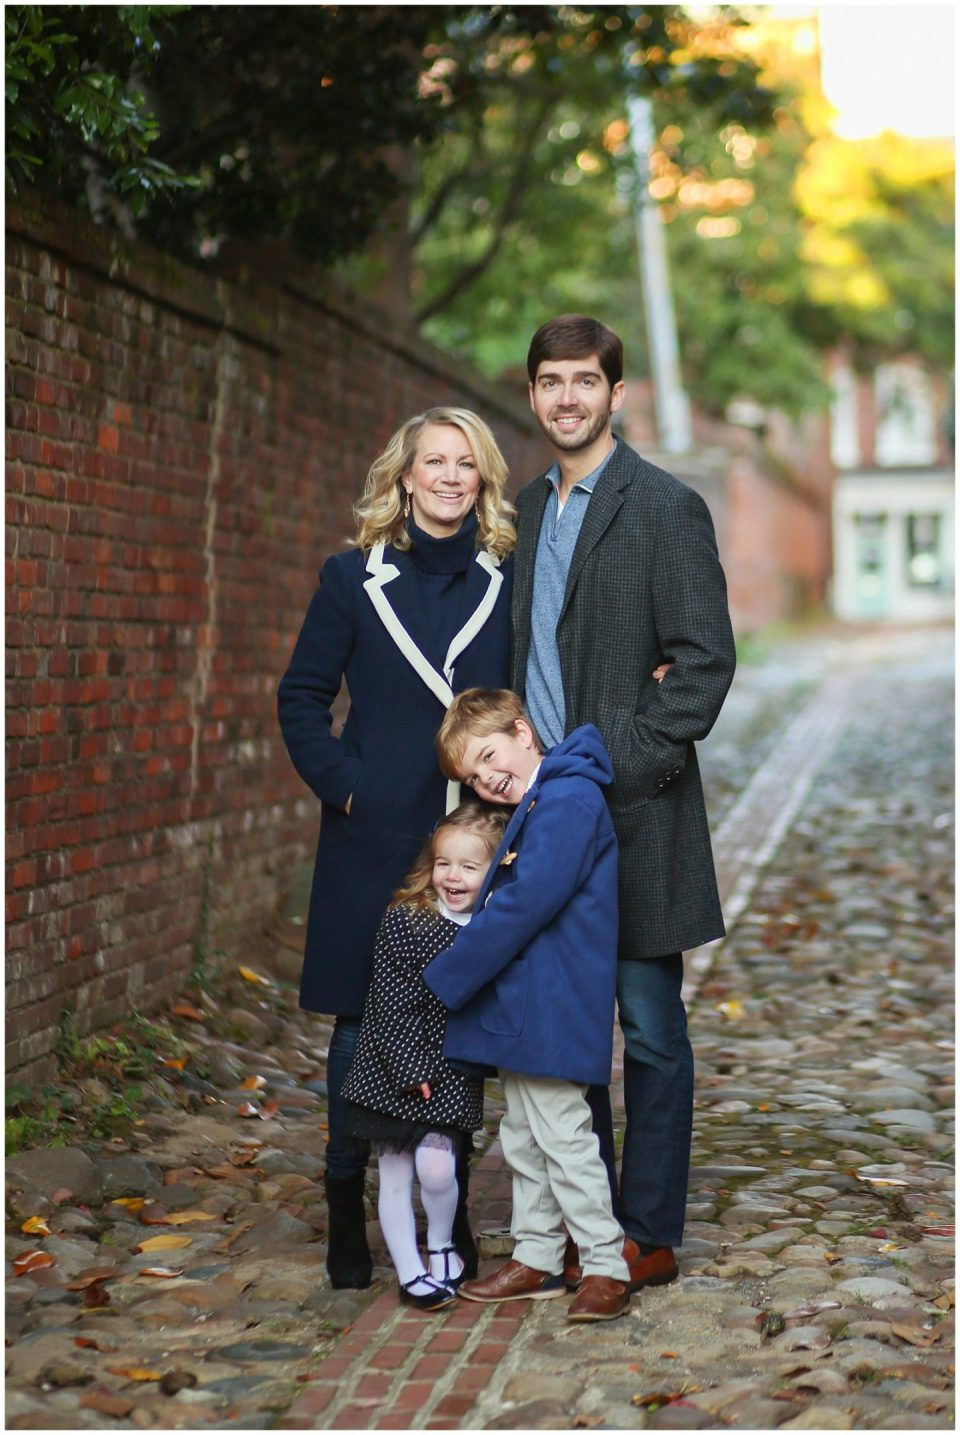 Alexandria VA Family photographer photographs on Wales Alley in Old Town